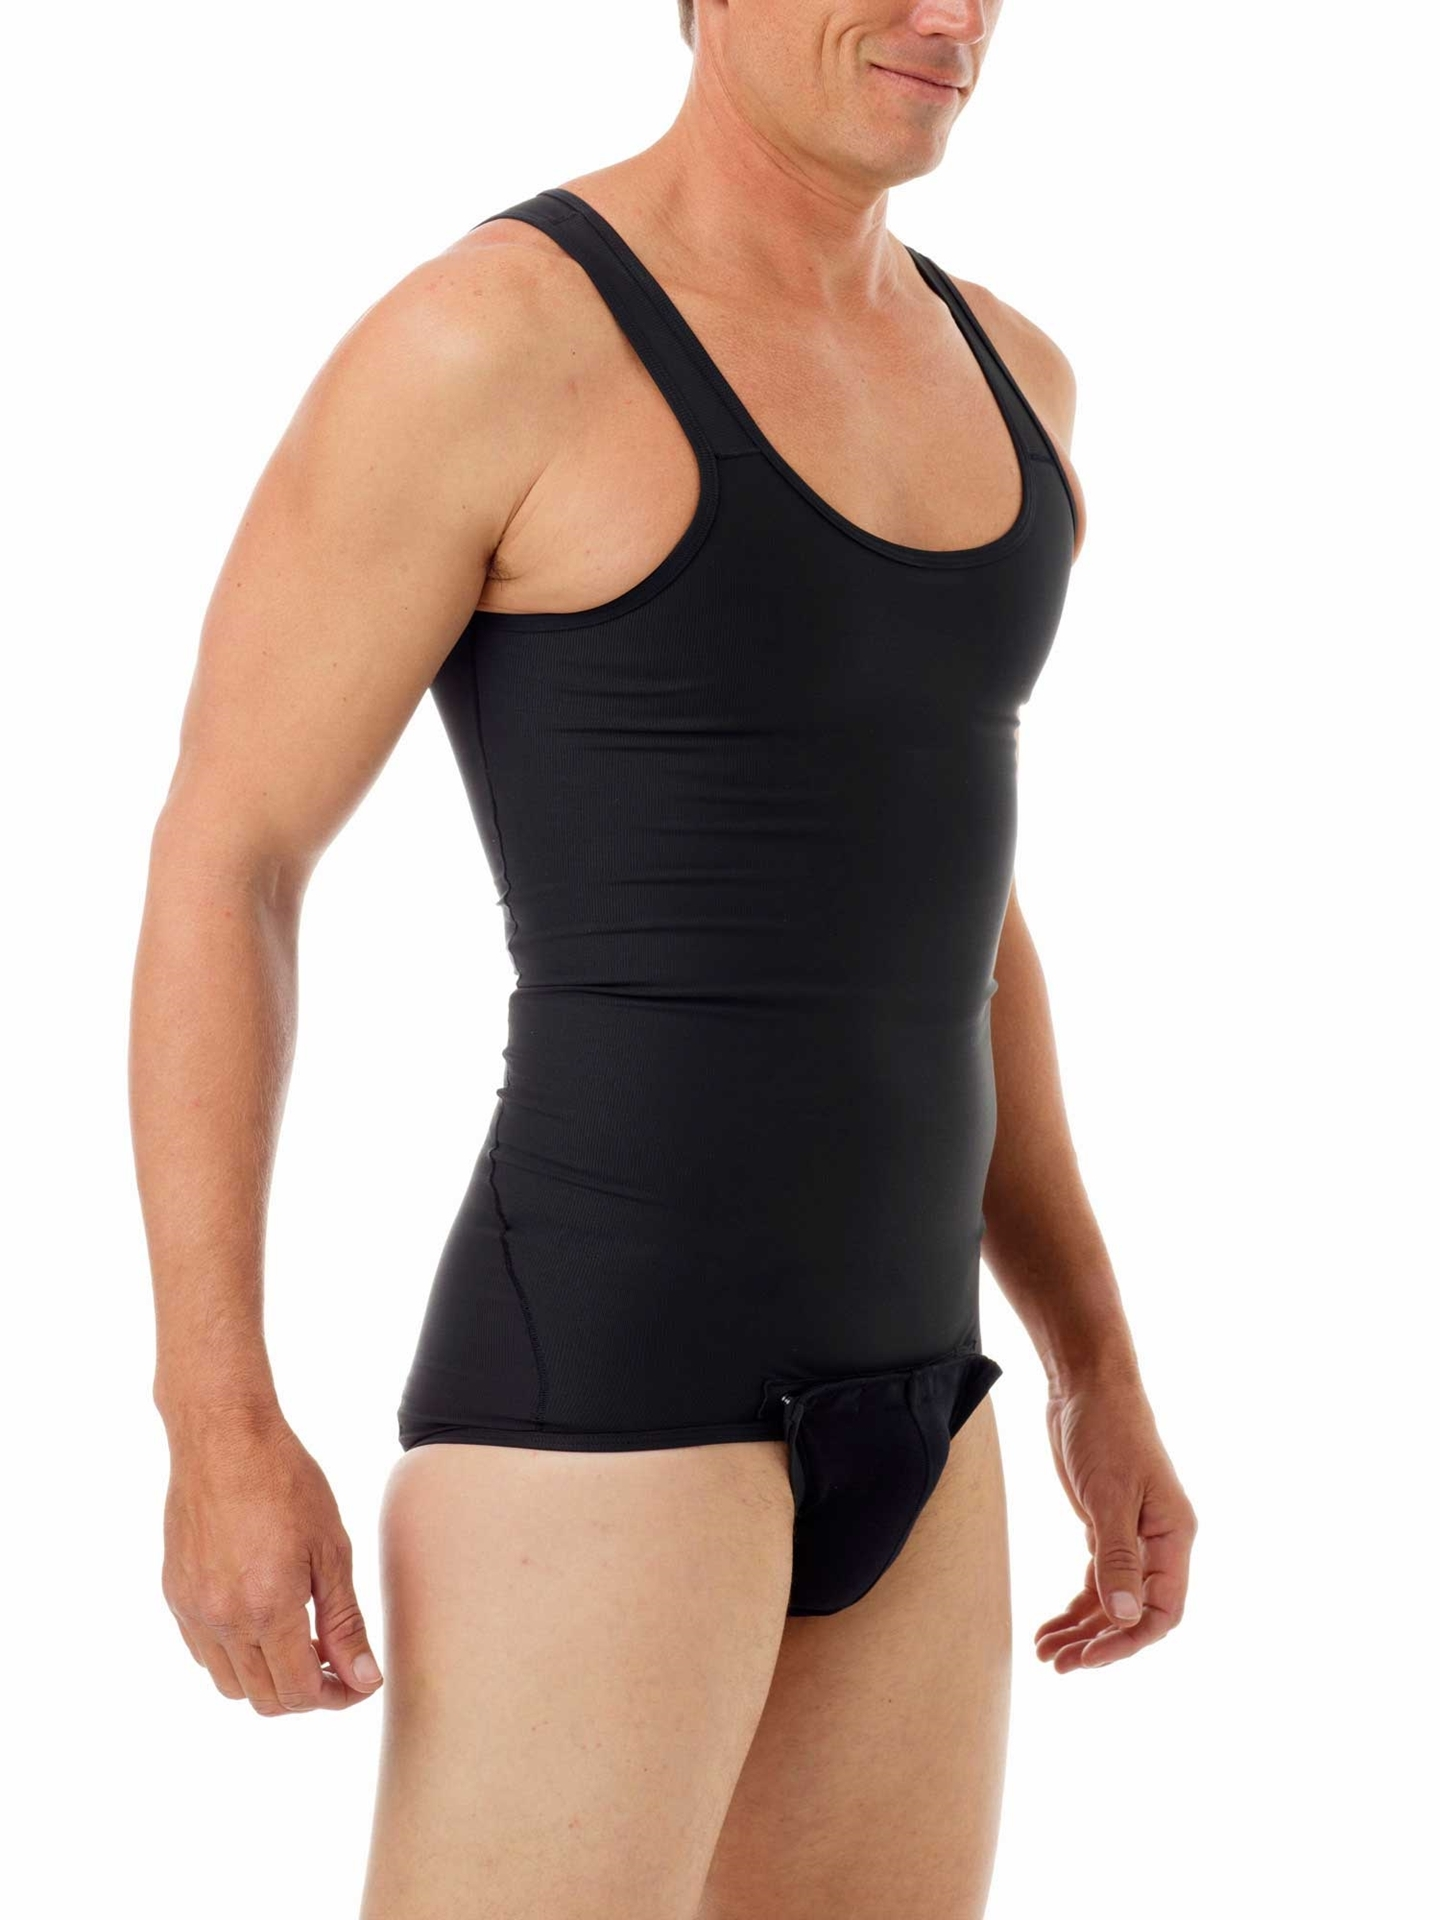 Black Shapewear Shaping Compression Tanksuit for men